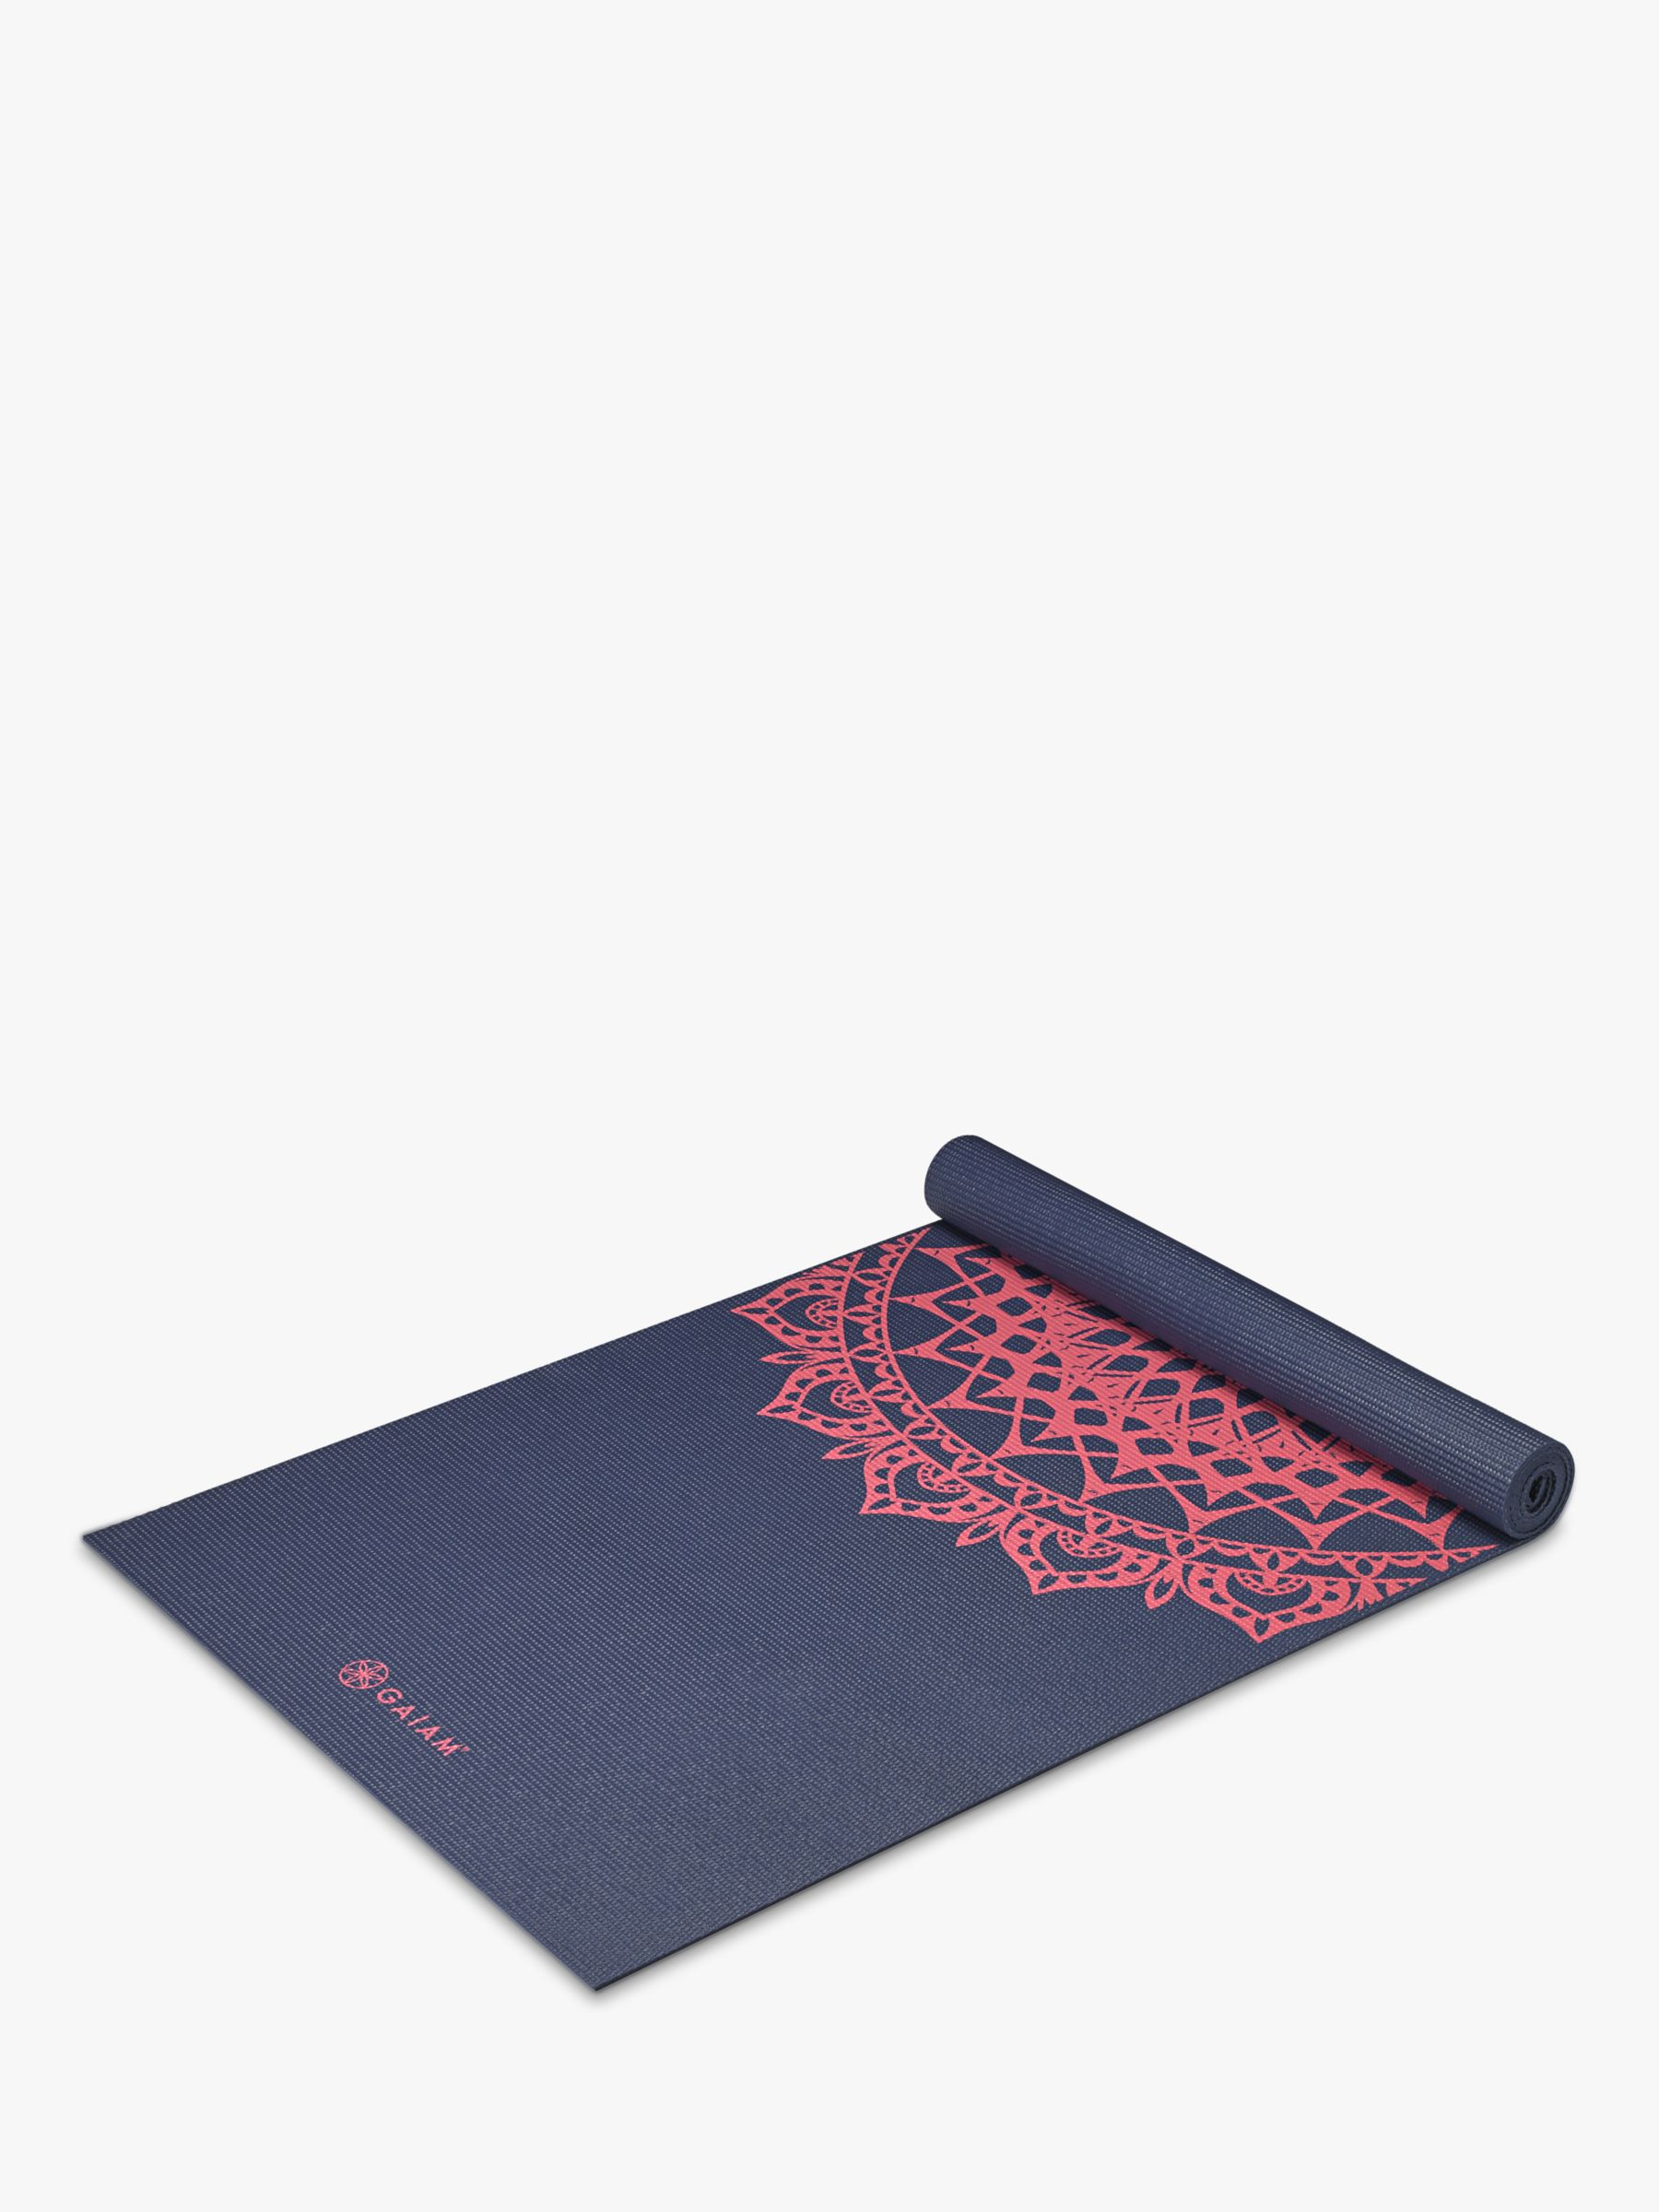 Gaiam Gaiam Premium Marrakesh 4mm Yoga Mat, Navy Fleur